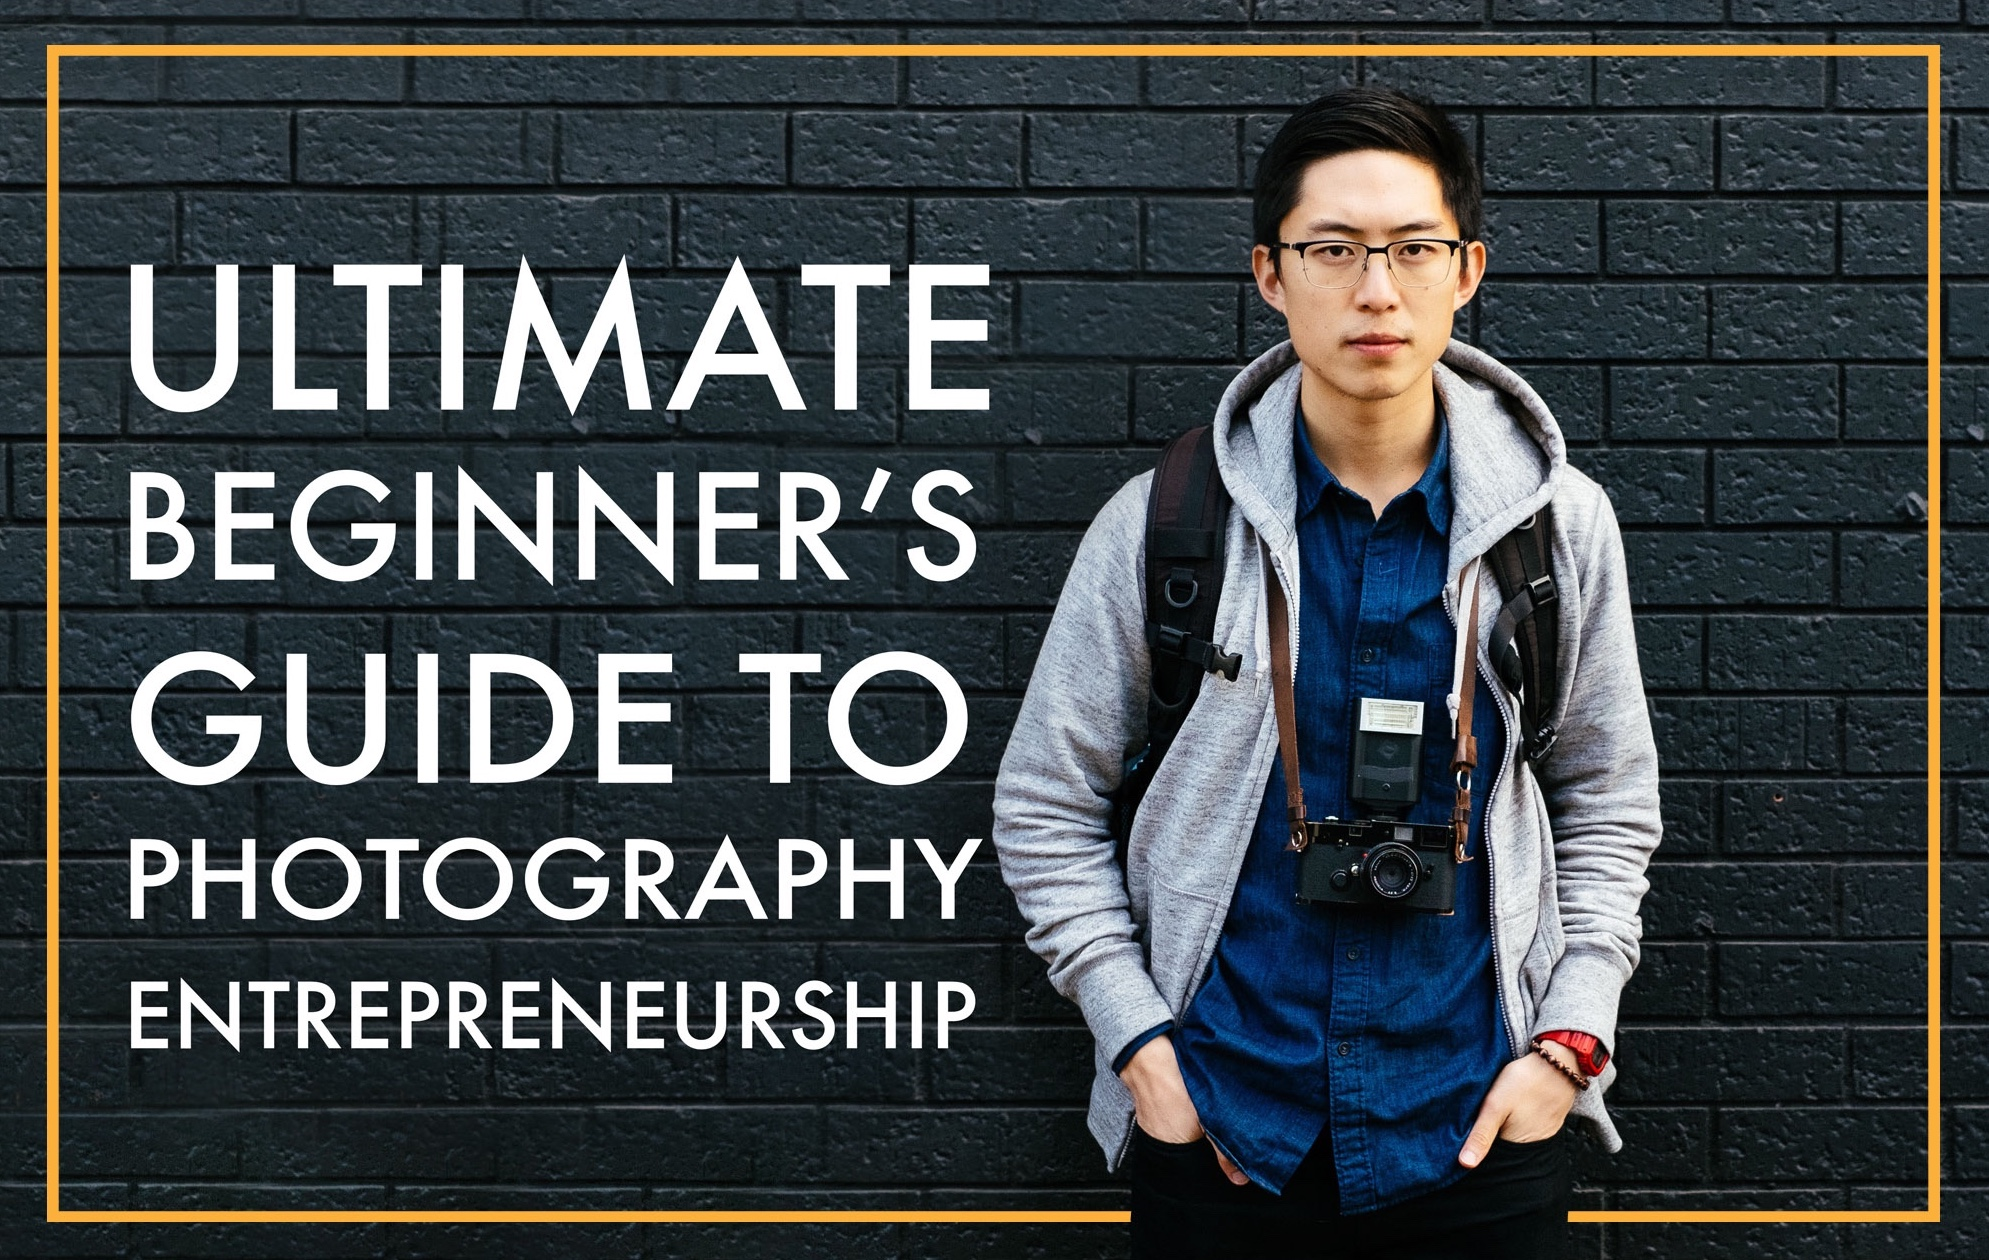 Ultimate Beginner's Guide to Photography Entrepreneurship - ERIC KIM Udemy